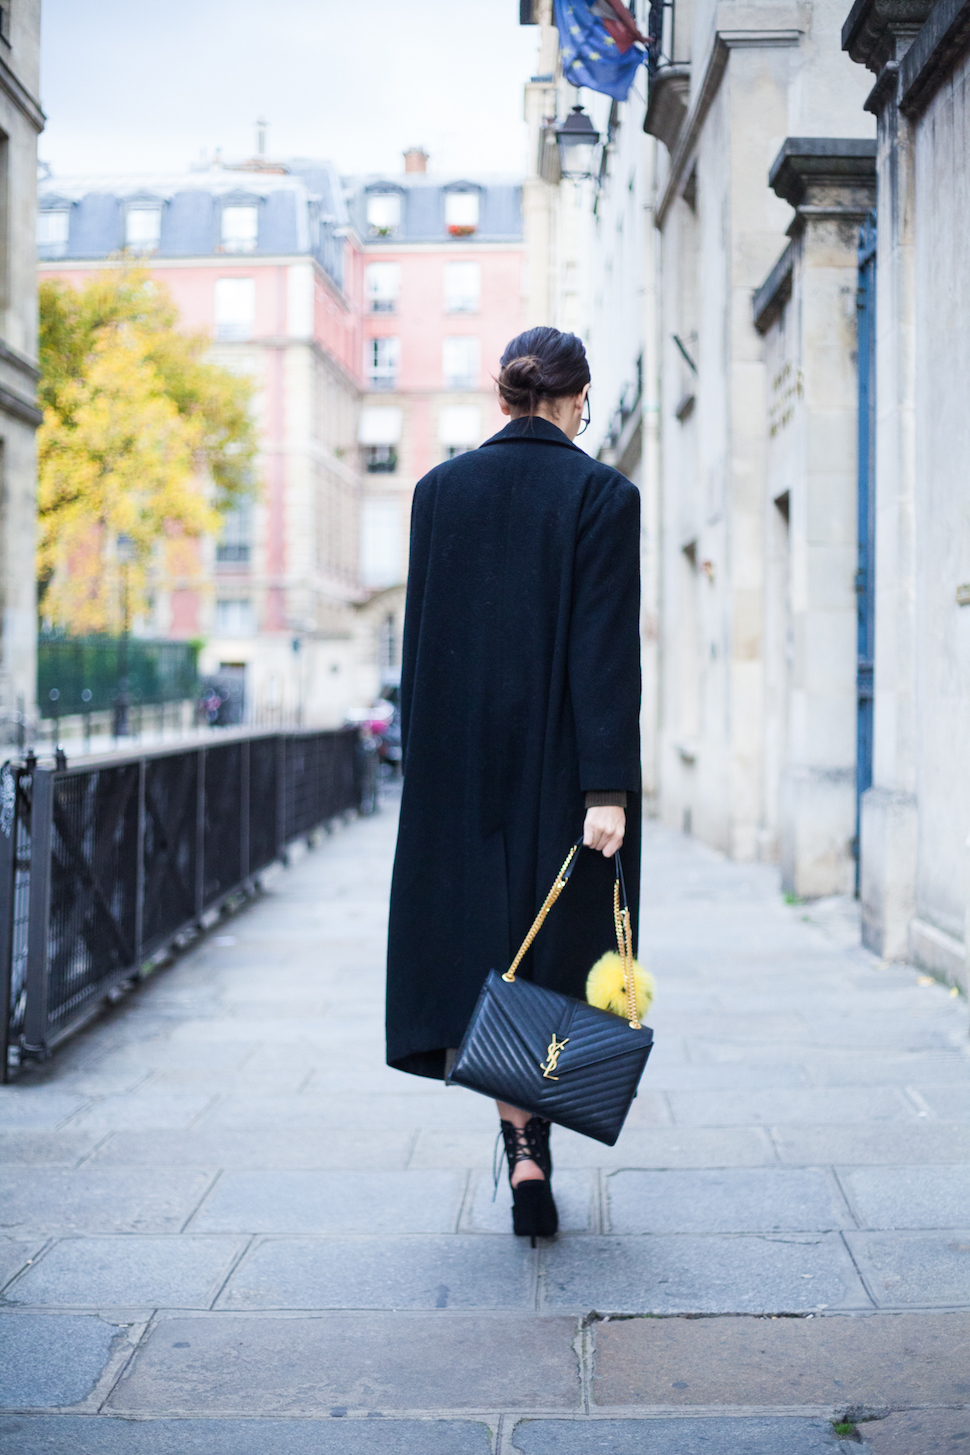 The business style maxi coat is a winning trend this fall. We love Alexandra Guerain's choice to accessorise with a YSL flat purse. Coat: ASOS, Shoes: Shoes Schutz, Bag: Saint Laurent.